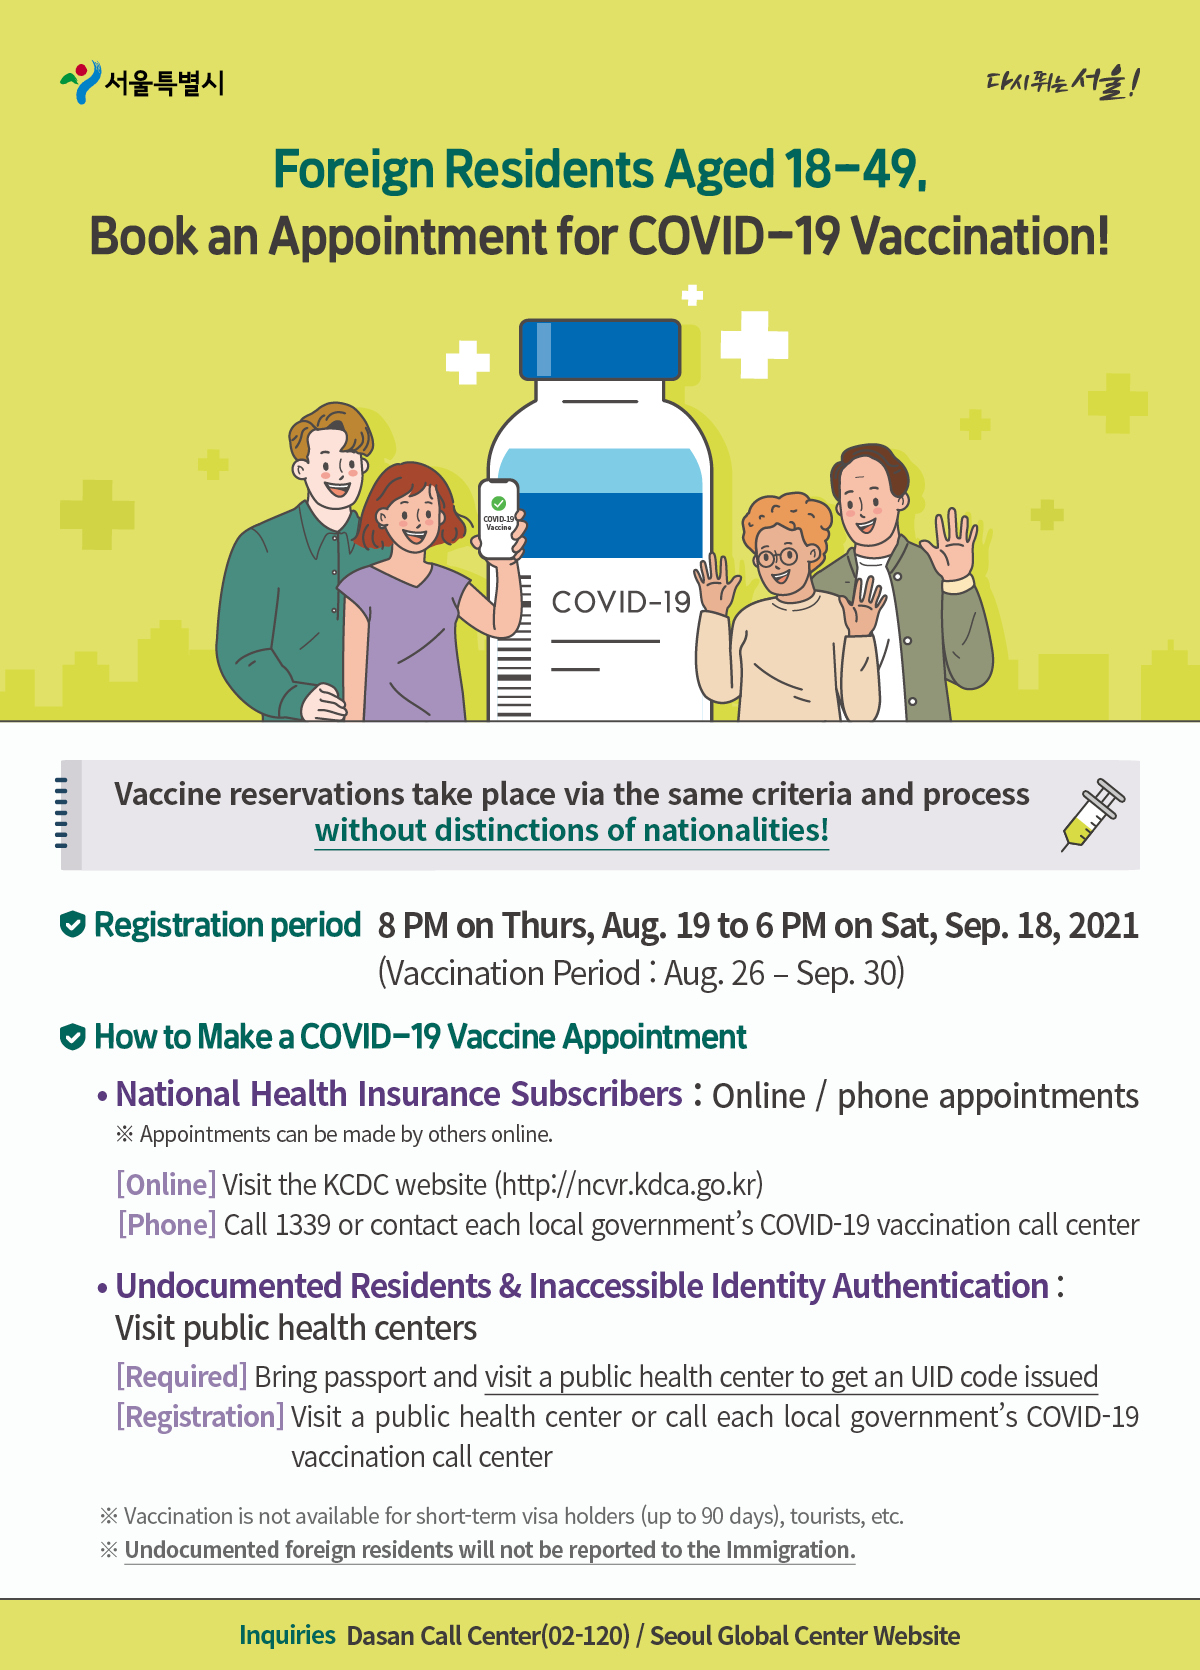 Foreign residents Aged 18-49, Book an Appointment for COVID-19 Vaccination! ENGLISH POSTER